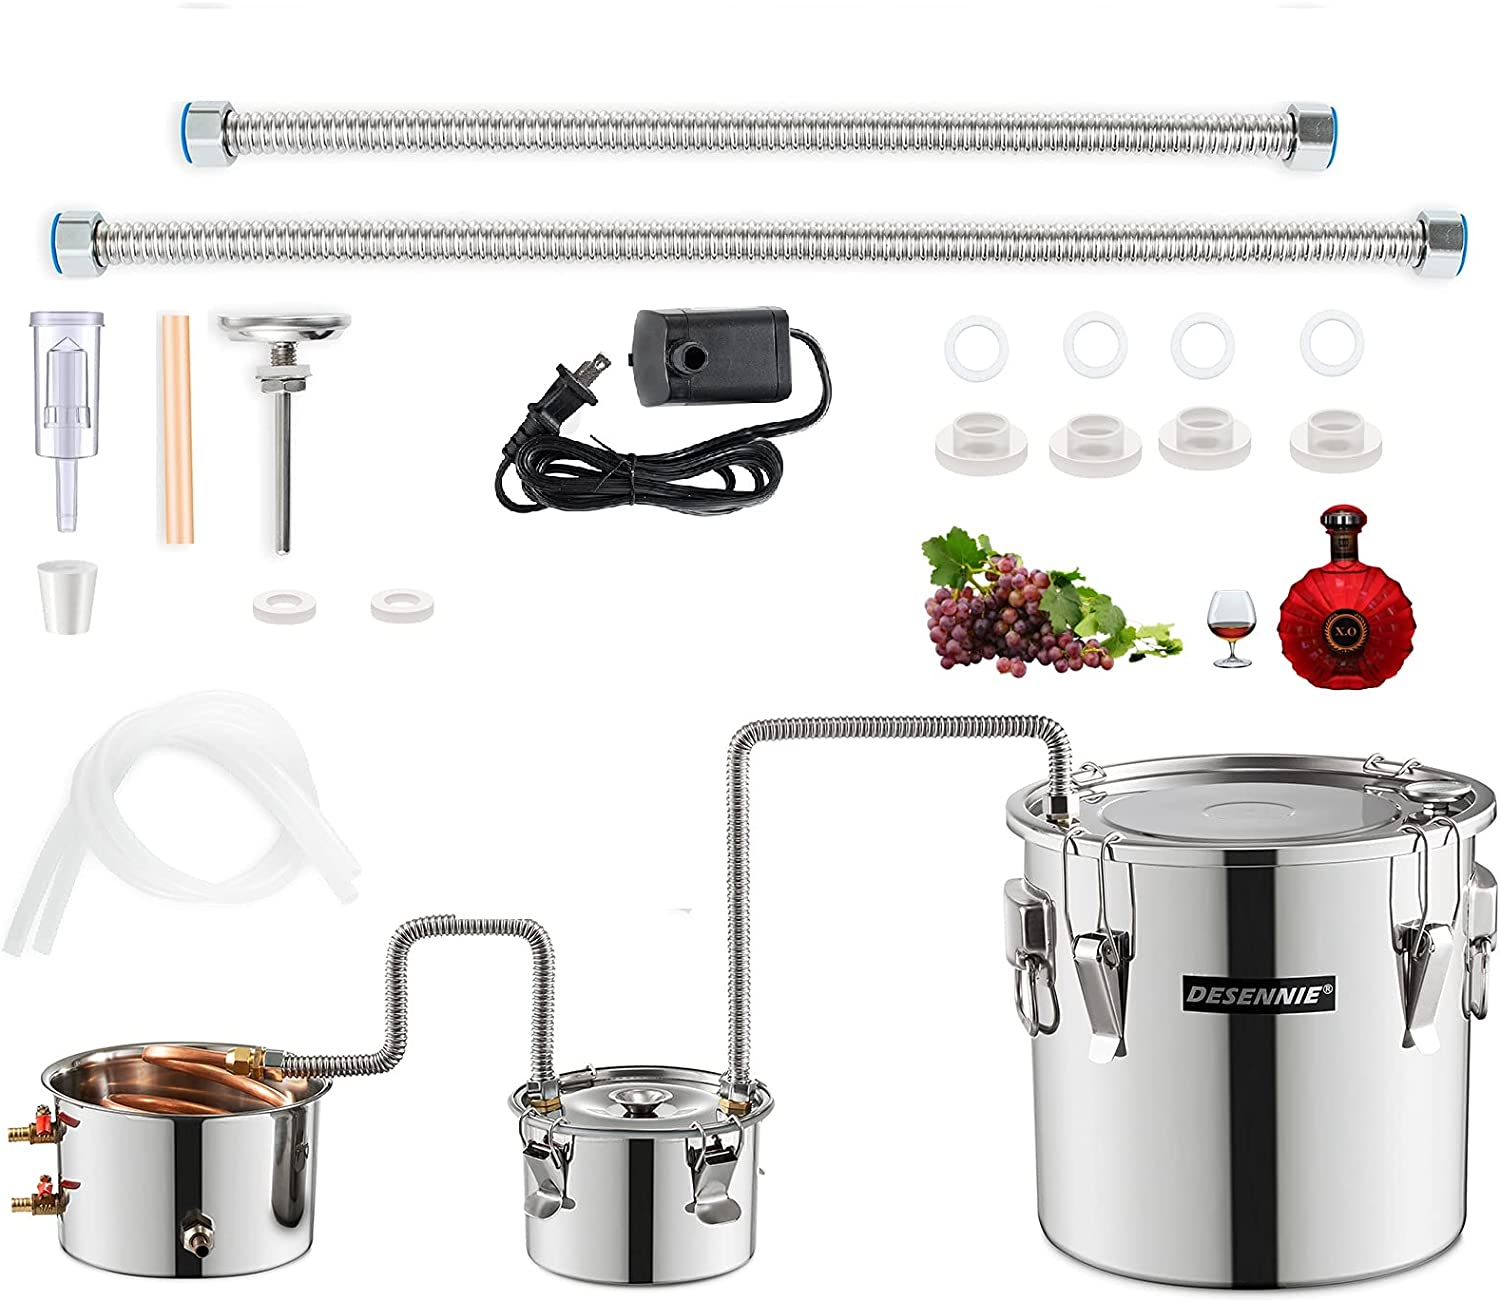 DESENNIE 5Gal 20L Moonshine Still with Electric Circulating Pump, Water Alcohol Distiller with Thumper Keg, Copper Tube Distiller, Home Brewing Kit, DIY Whisky Brandy, Extracting Essential Oils